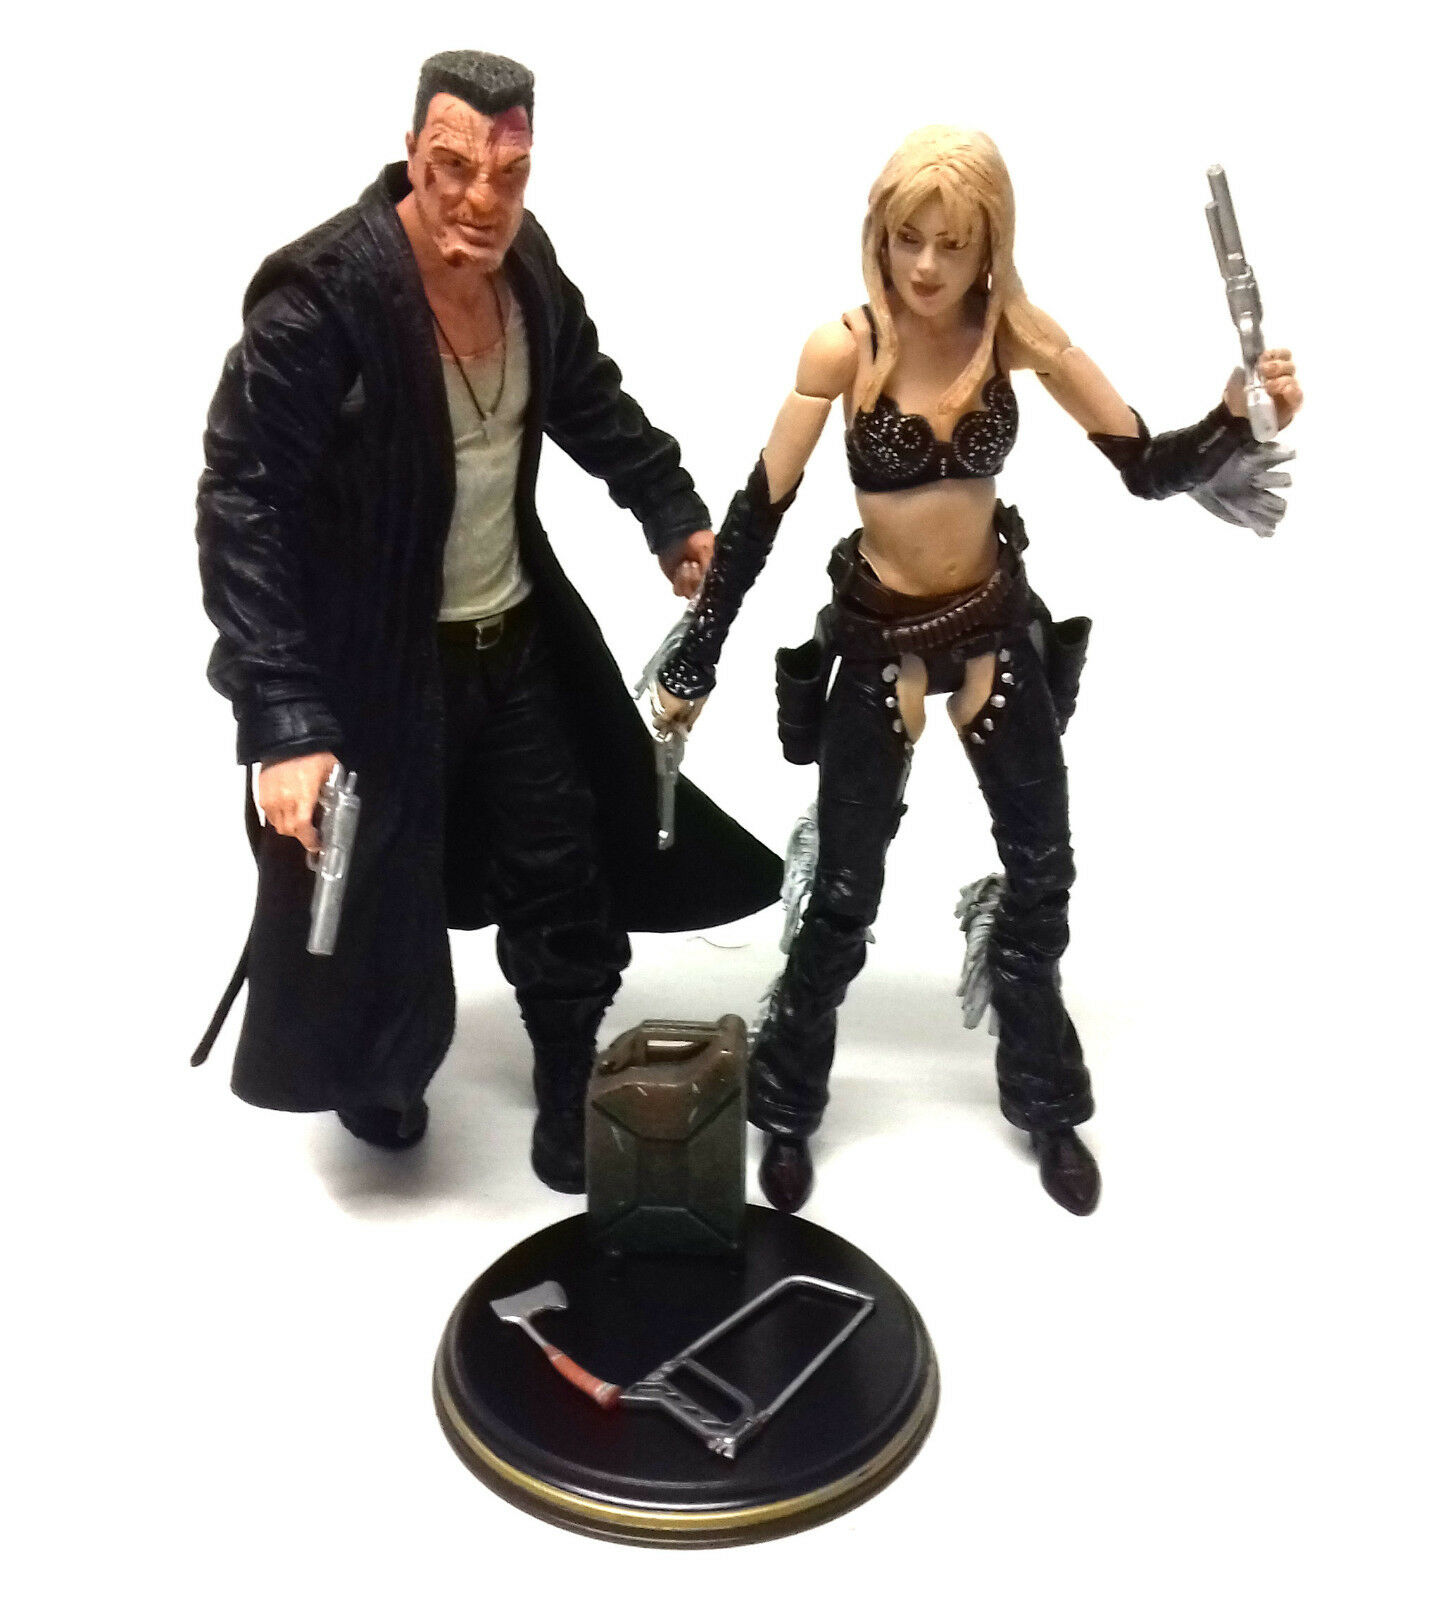 Frank Millers SIN CITY Movie Movie Movie Comic toy Figures MARV & NANCY with accessories b3fa55